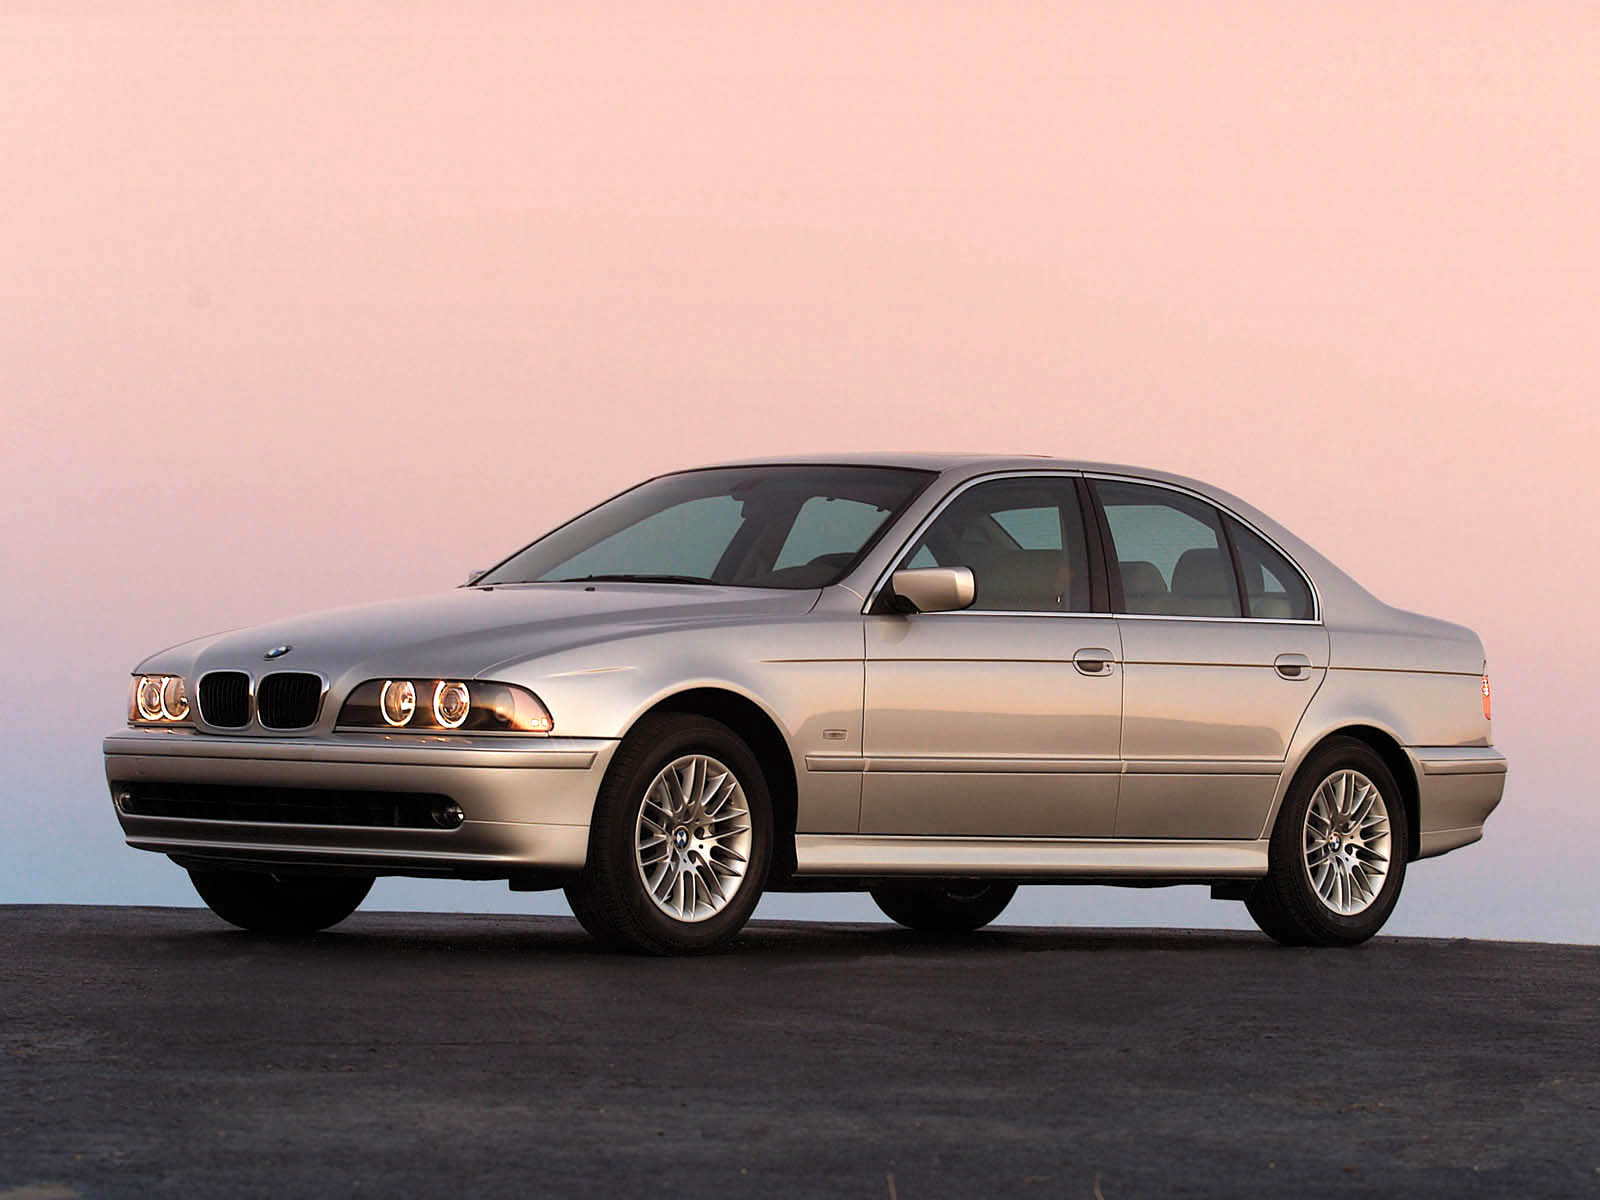 Bmw 5 Series E39 Photos Photogallery With 14 Pics